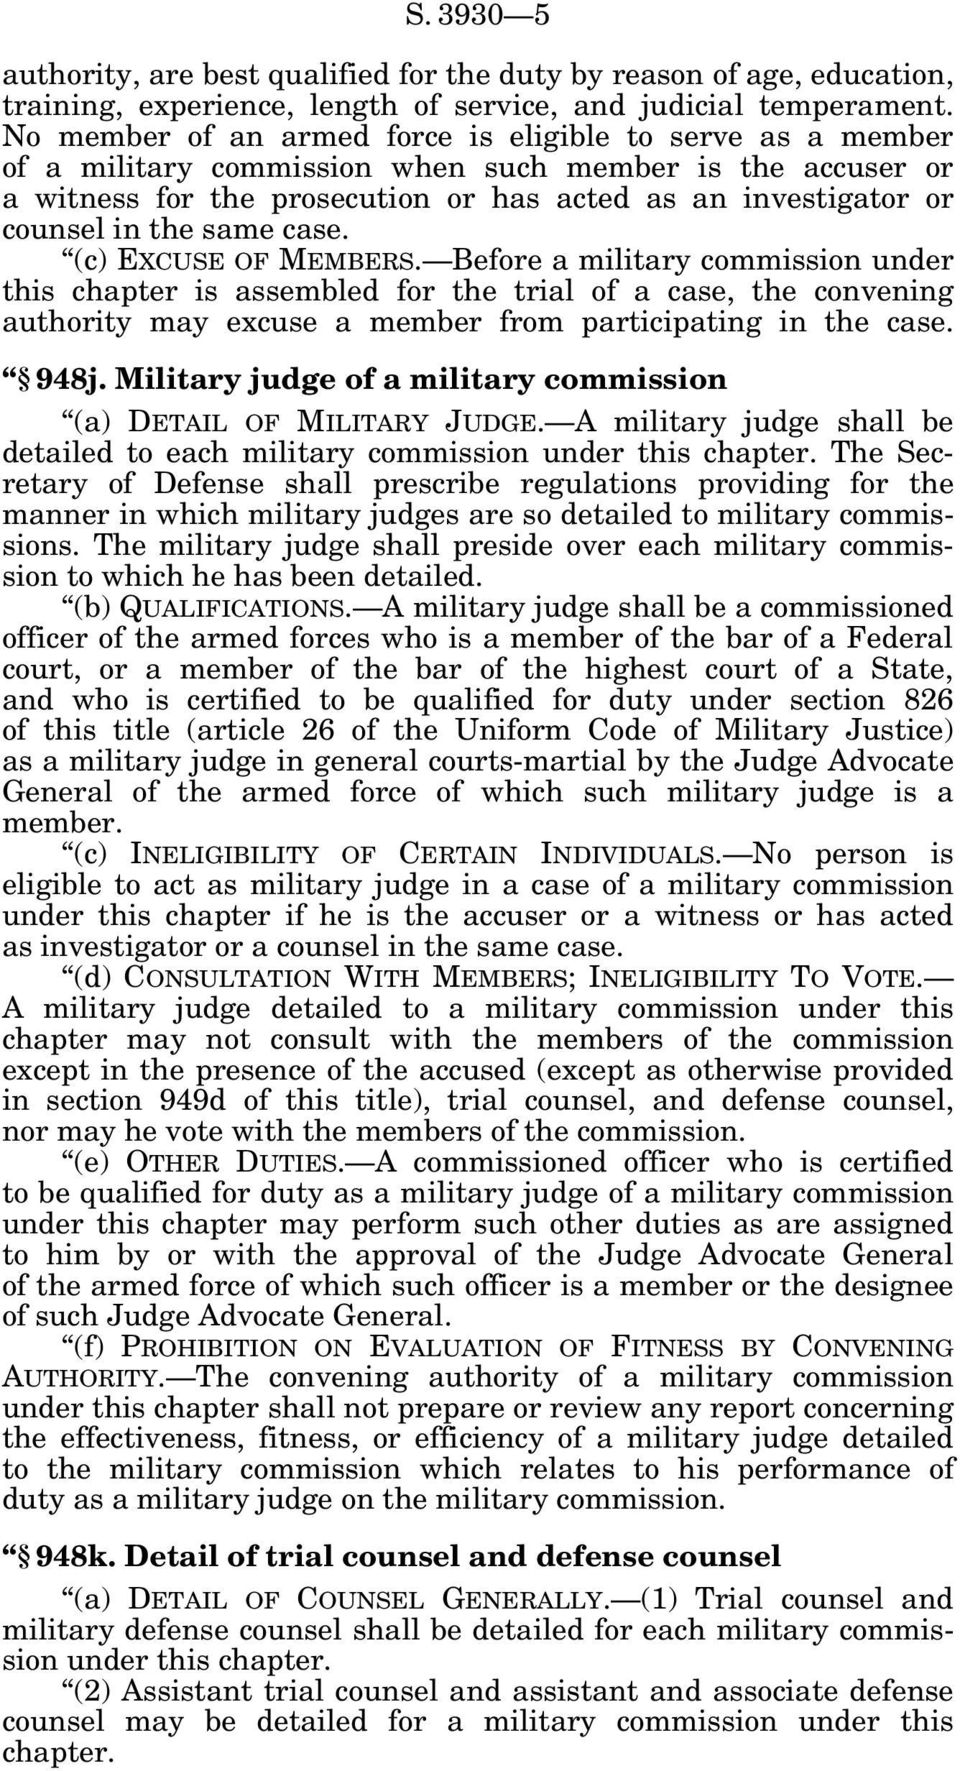 the same case. (c) EXCUSE OF MEMBERS. Before a military commission under this chapter is assembled for the trial of a case, the convening authority may excuse a member from participating in the case.